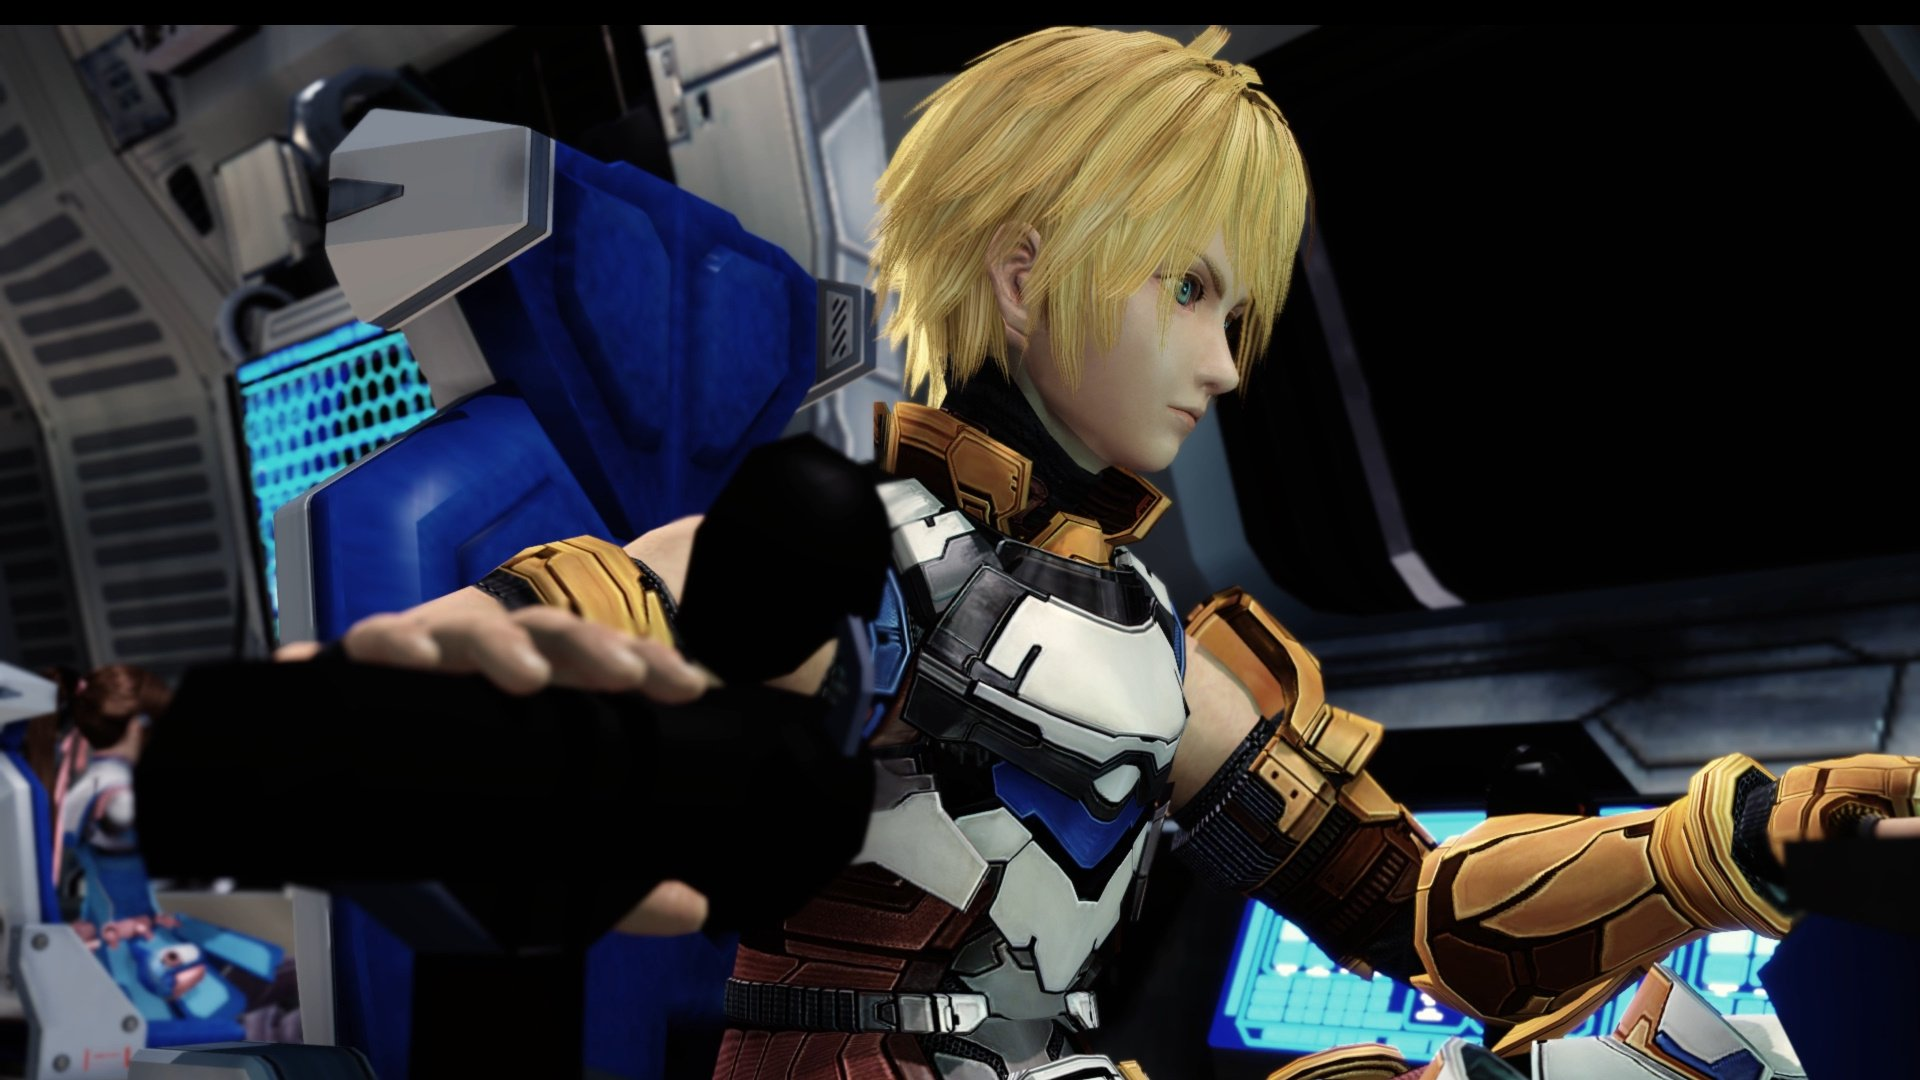 Star Ocean - The Last Hope Remastered